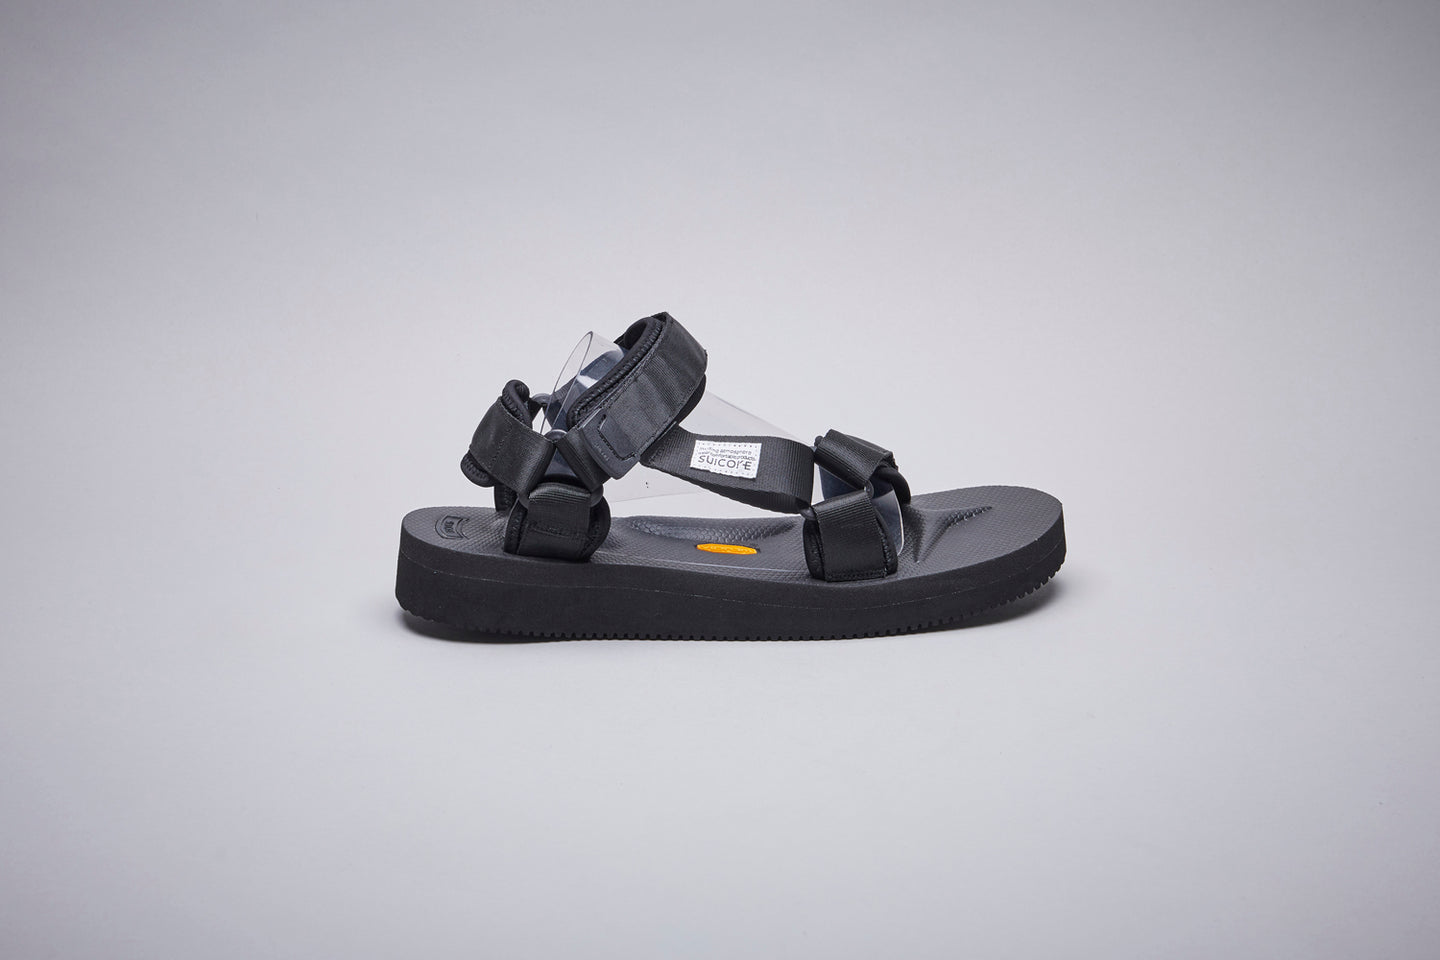 SUICOKE-Sandals-DEPA-V2 - Black-OG-022V2 Official Webstore Spring 2021